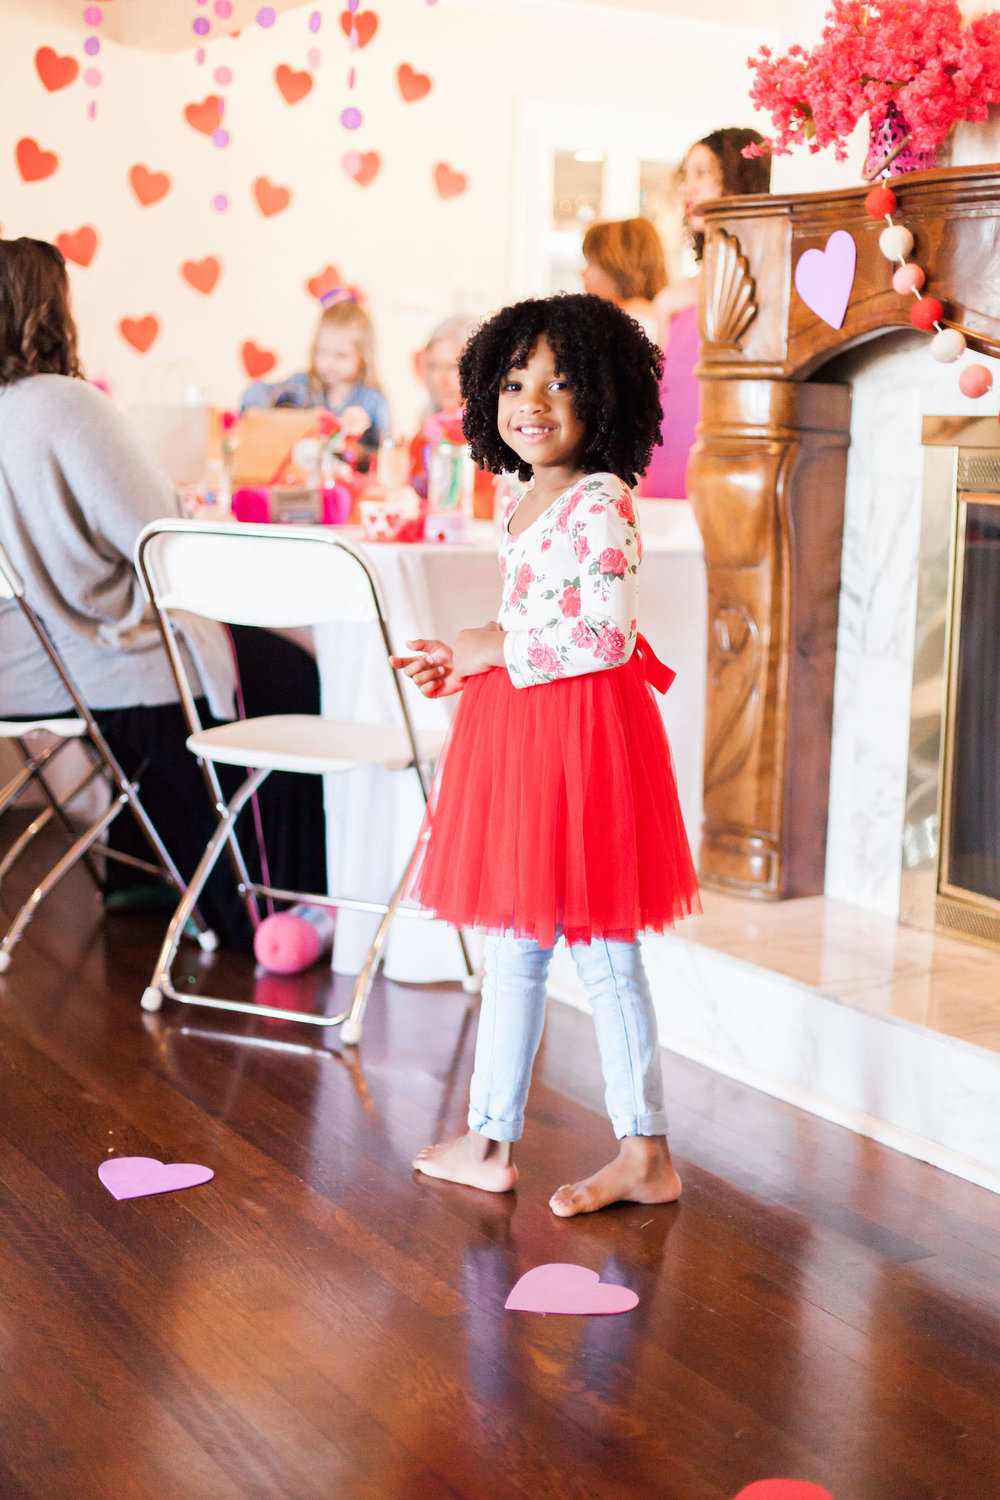 art-craft-valentines-day-party-Connie-Meinhardt-Photography-girl-in-tutu.jpg